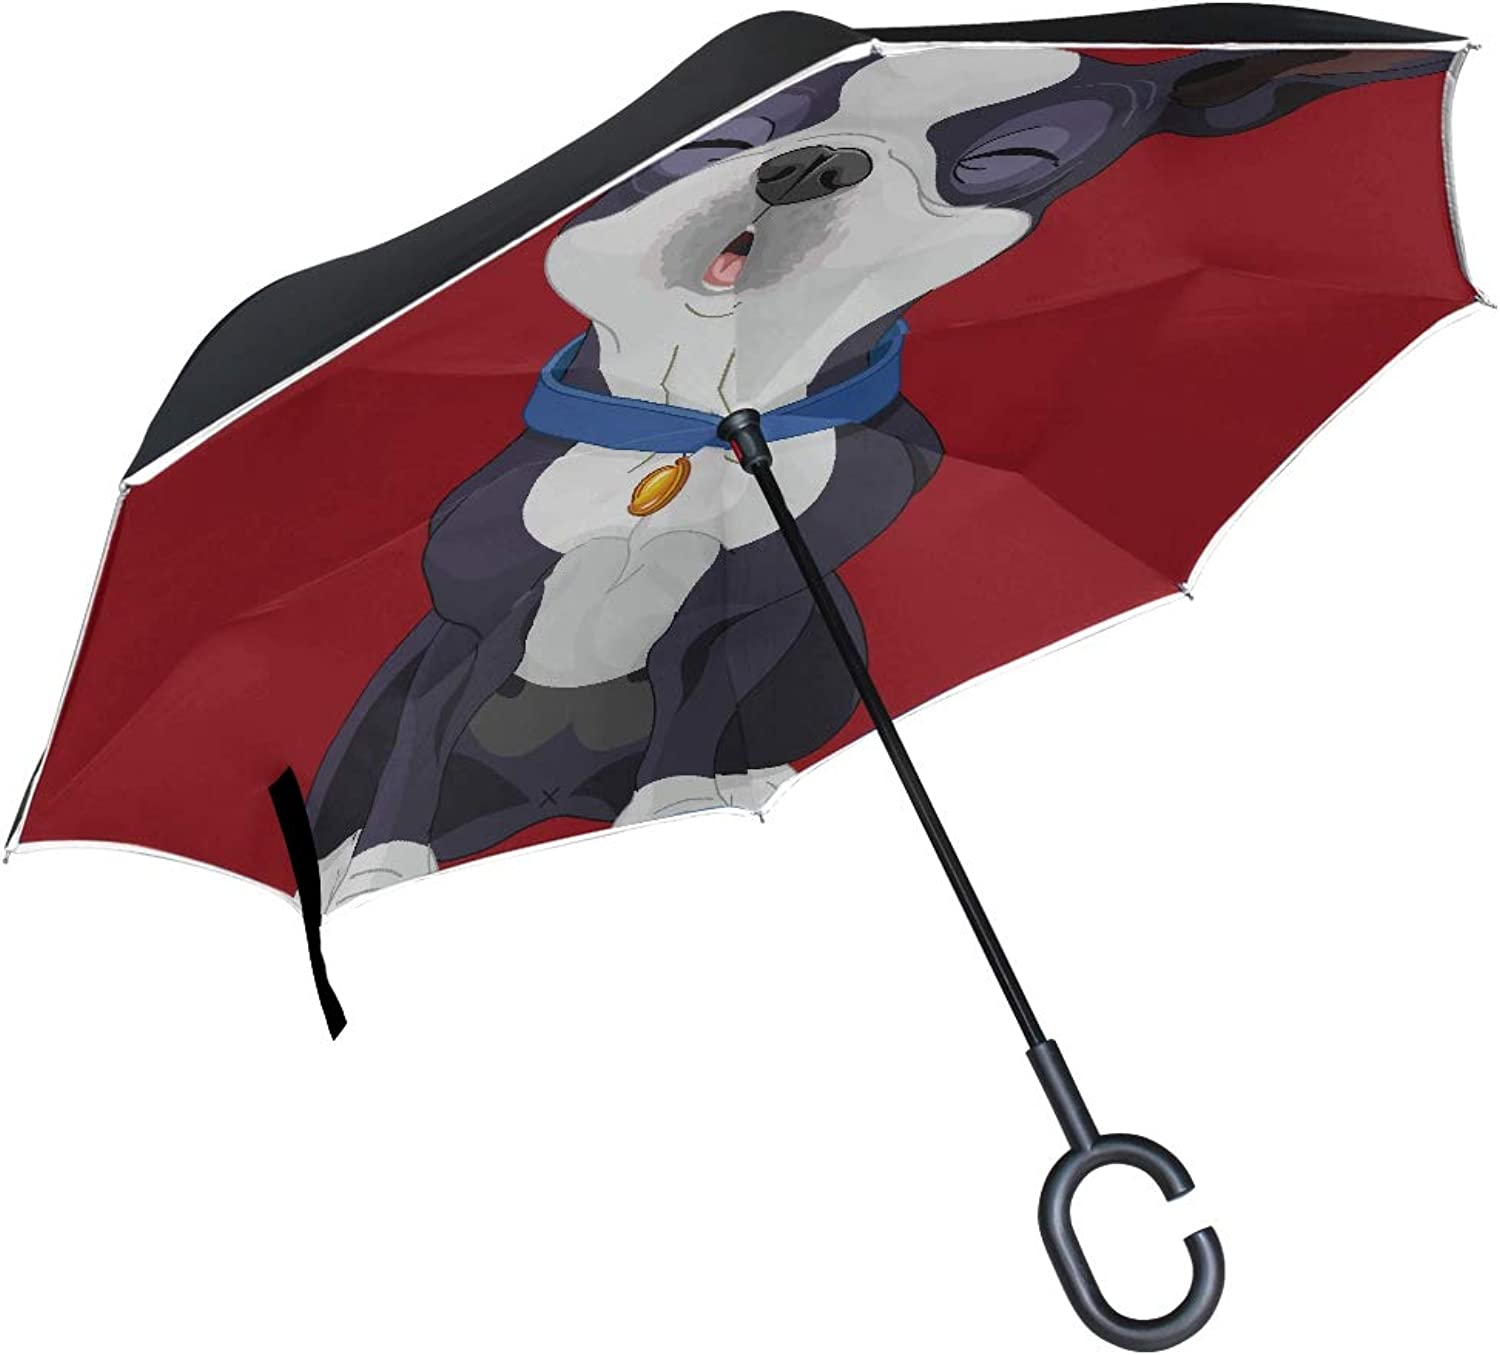 Double Layer Ingreened Illustration Howling Cute Boston Terrier Umbrellas Reverse Folding Umbrella Windproof Uv Predection Big Straight Umbrella for Car Rain Outdoor with CShaped Handle